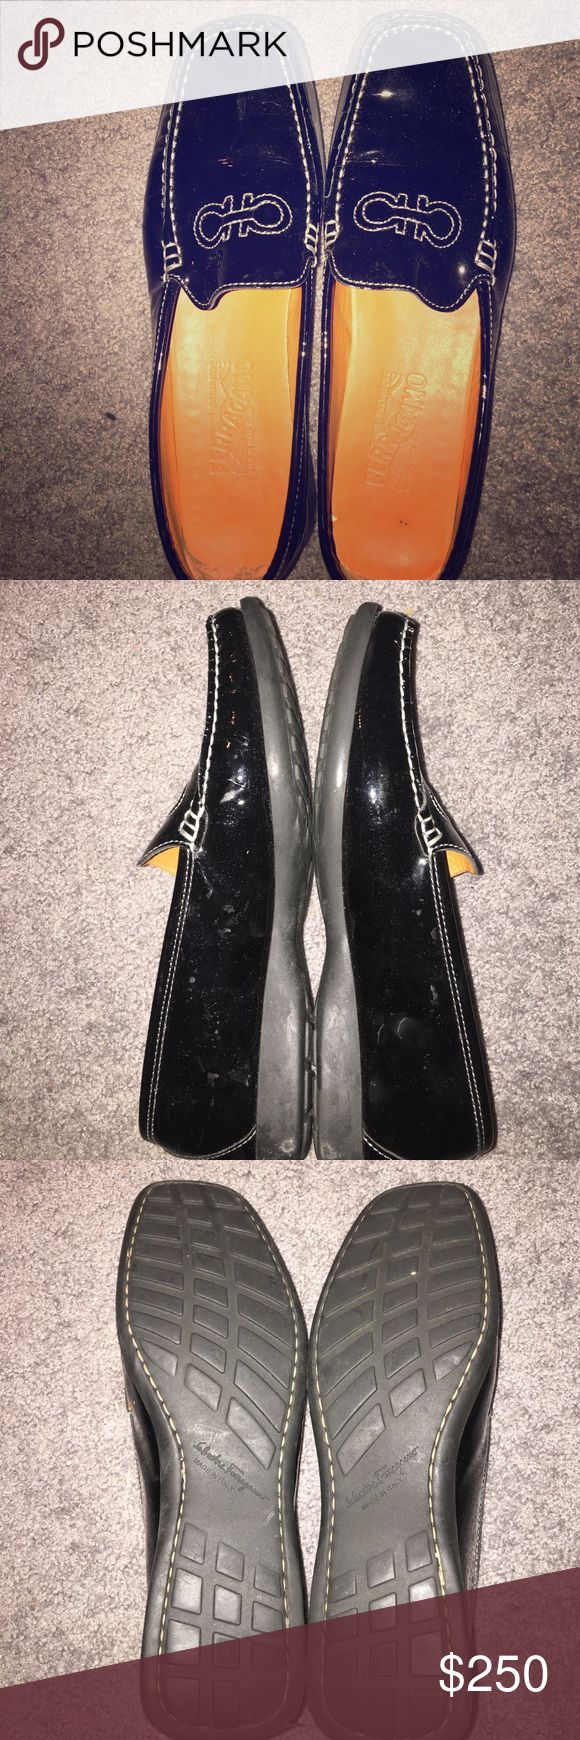 Salvador Ferragamo black leather shoes Black leather loafers, like new condition Ferragamo Shoes Flats & Loafers